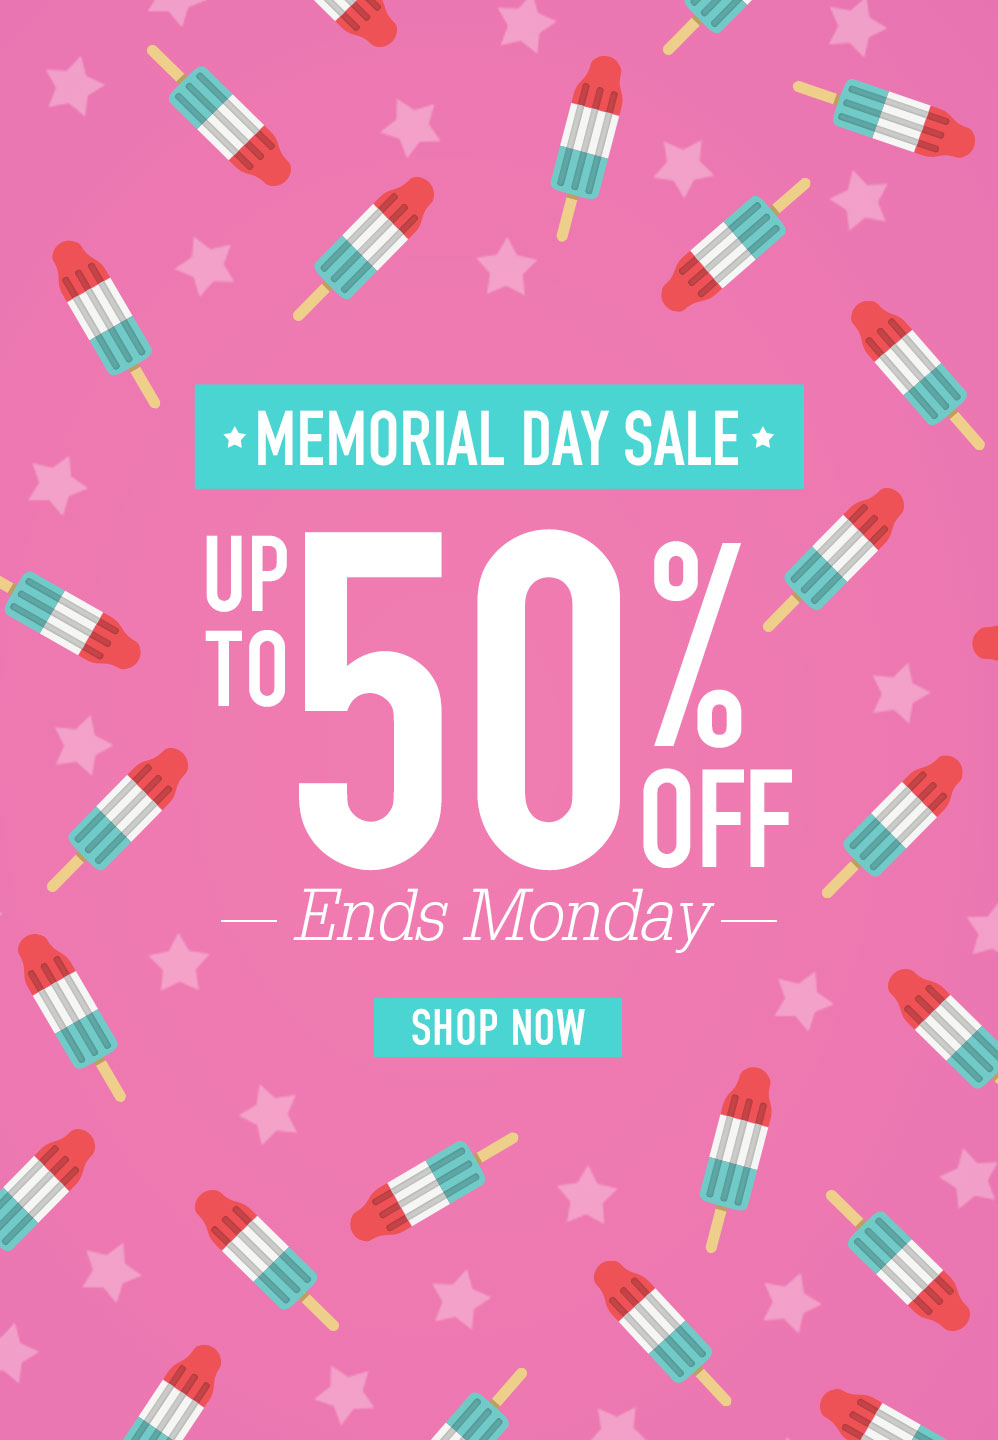 MEMORIAL DAY SALE. UP TO 50% OFF. ENDS MONDAY. SHOP NOW